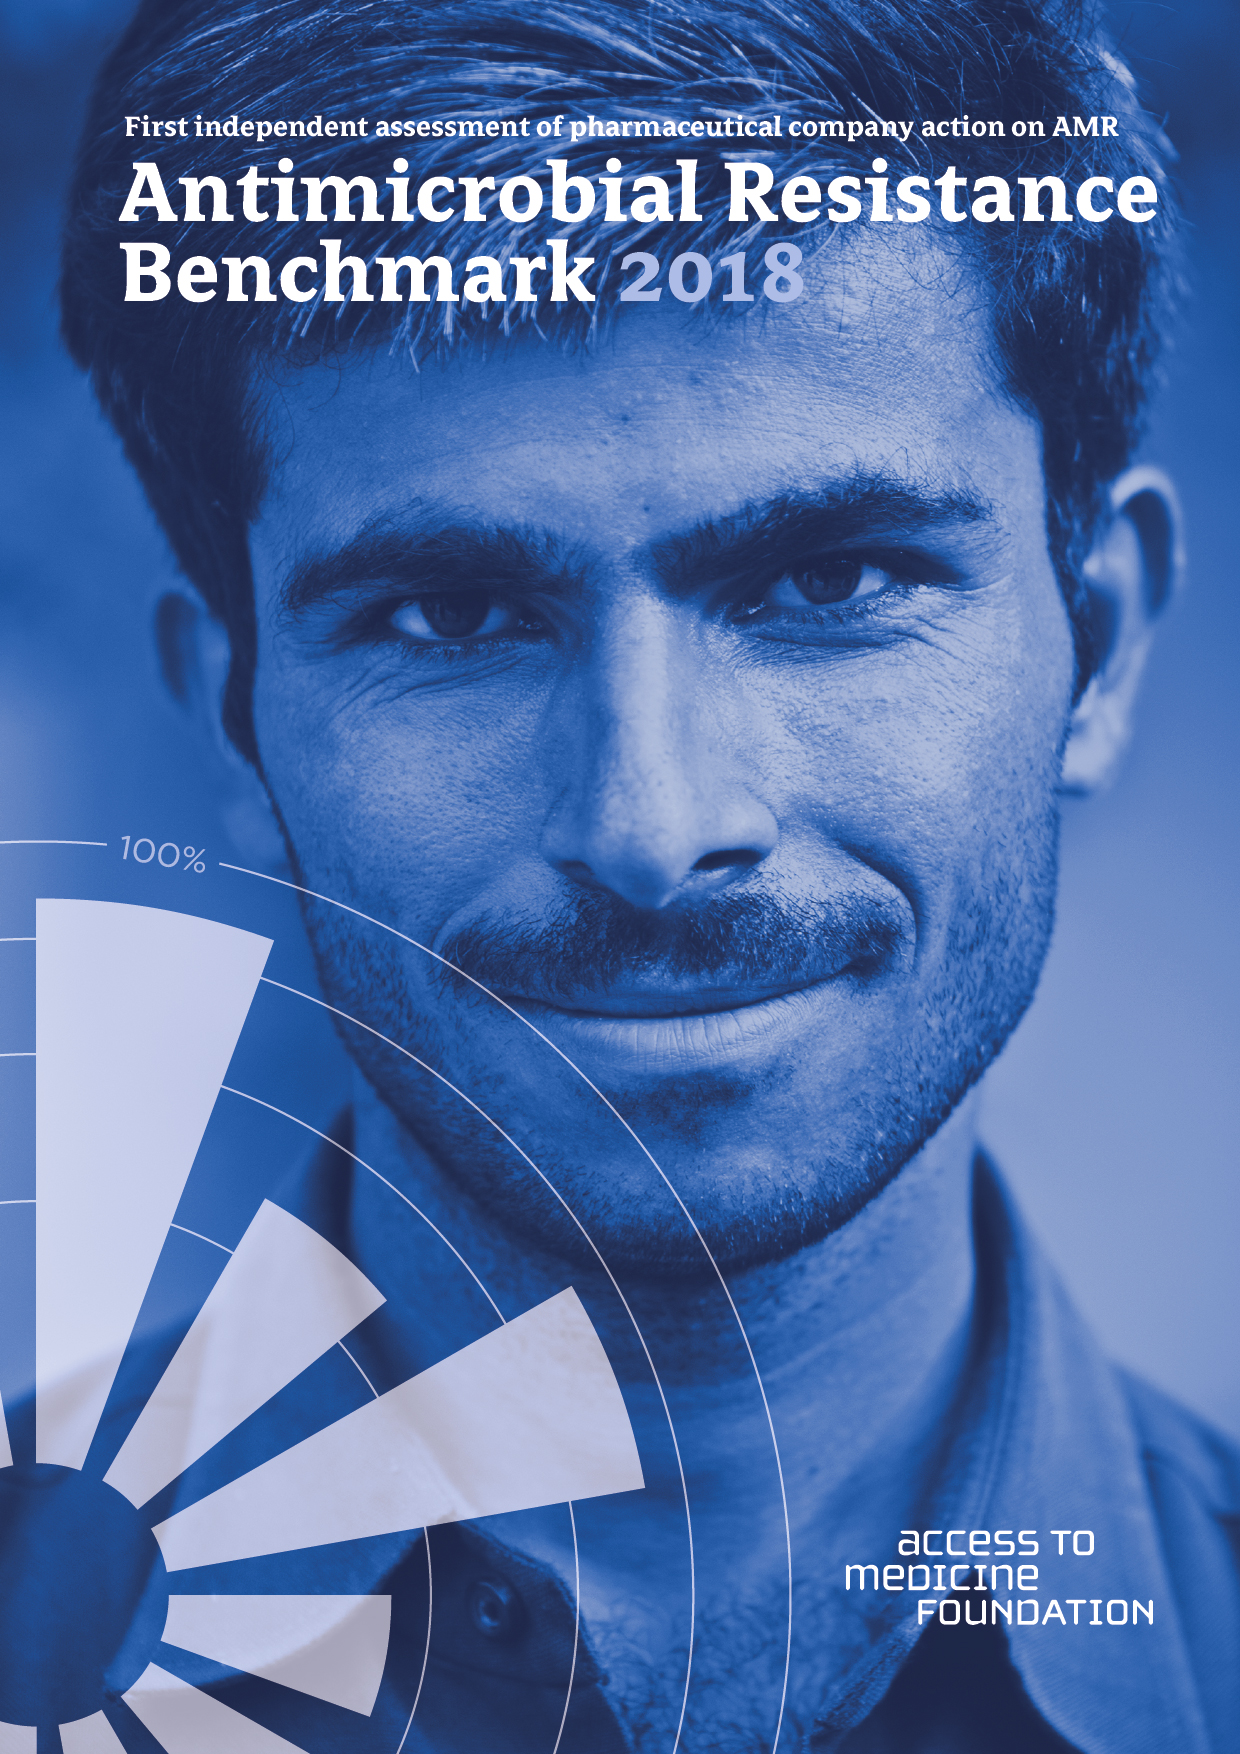 2018 Antimicrobial Resistance Benchmark